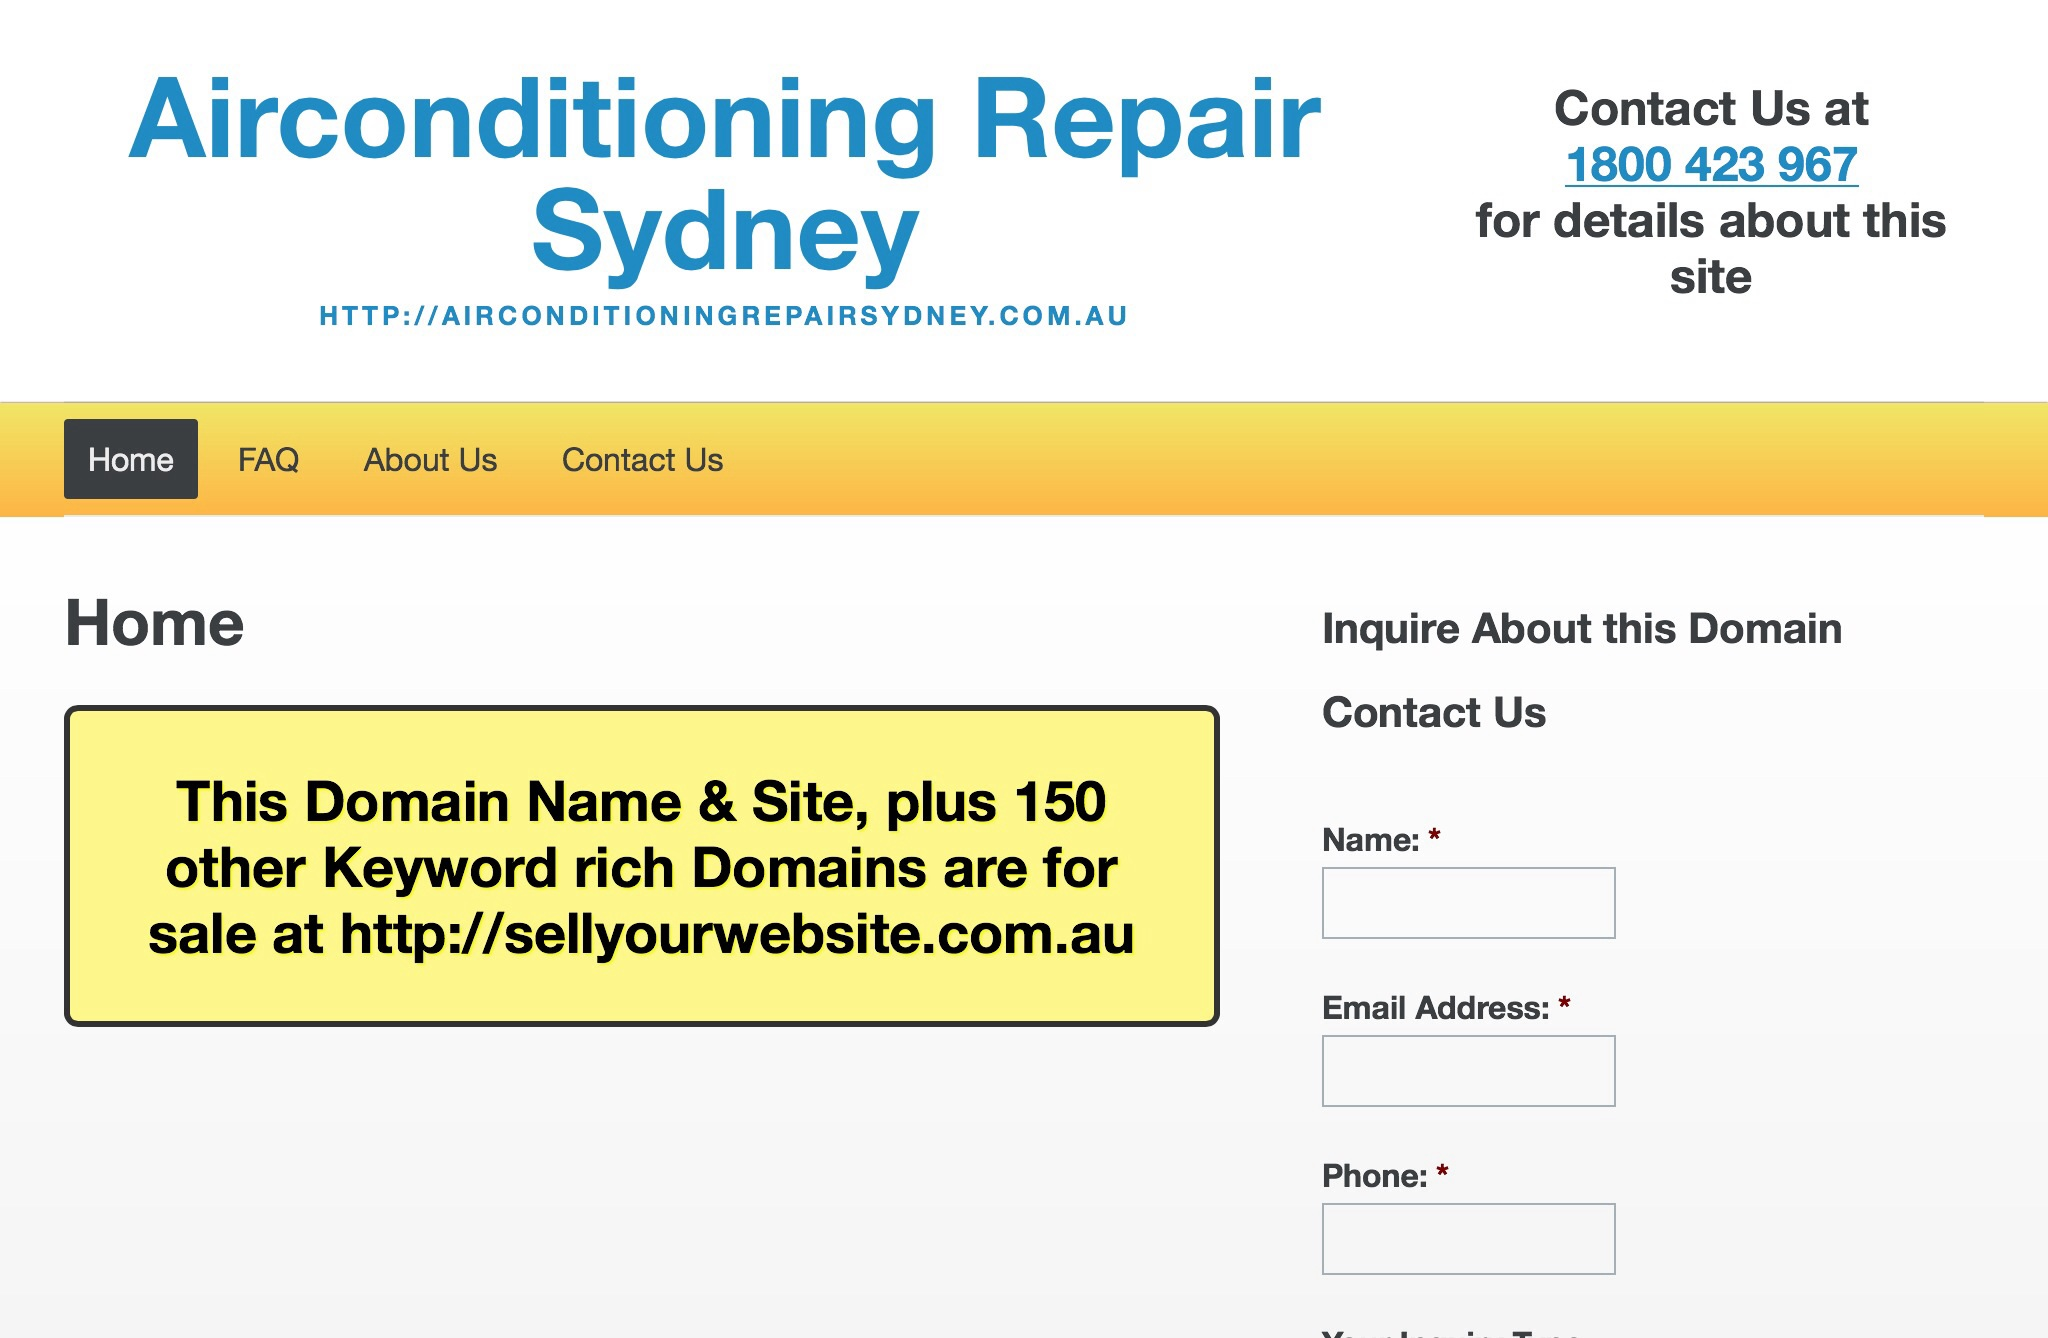 Airconditioning Repair Sydney